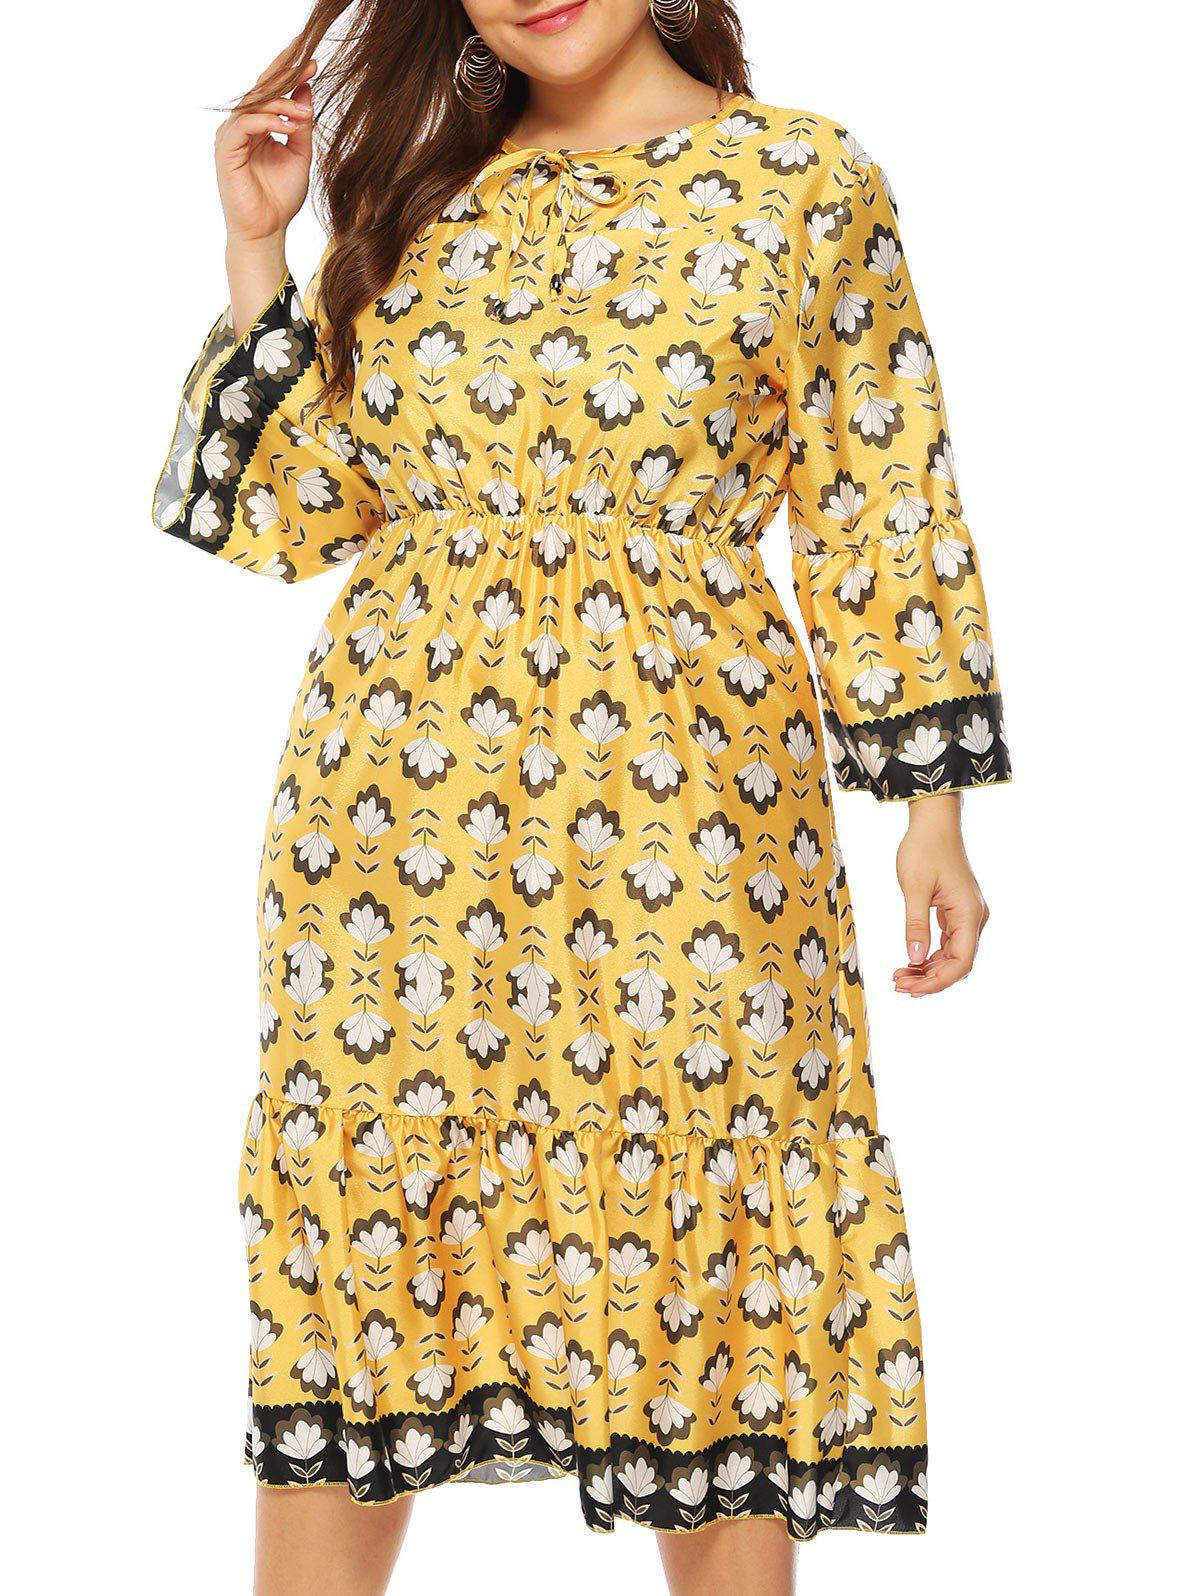 Floral Tie Collar Long Sleeve Plus Size Dress - YELLOW 2X